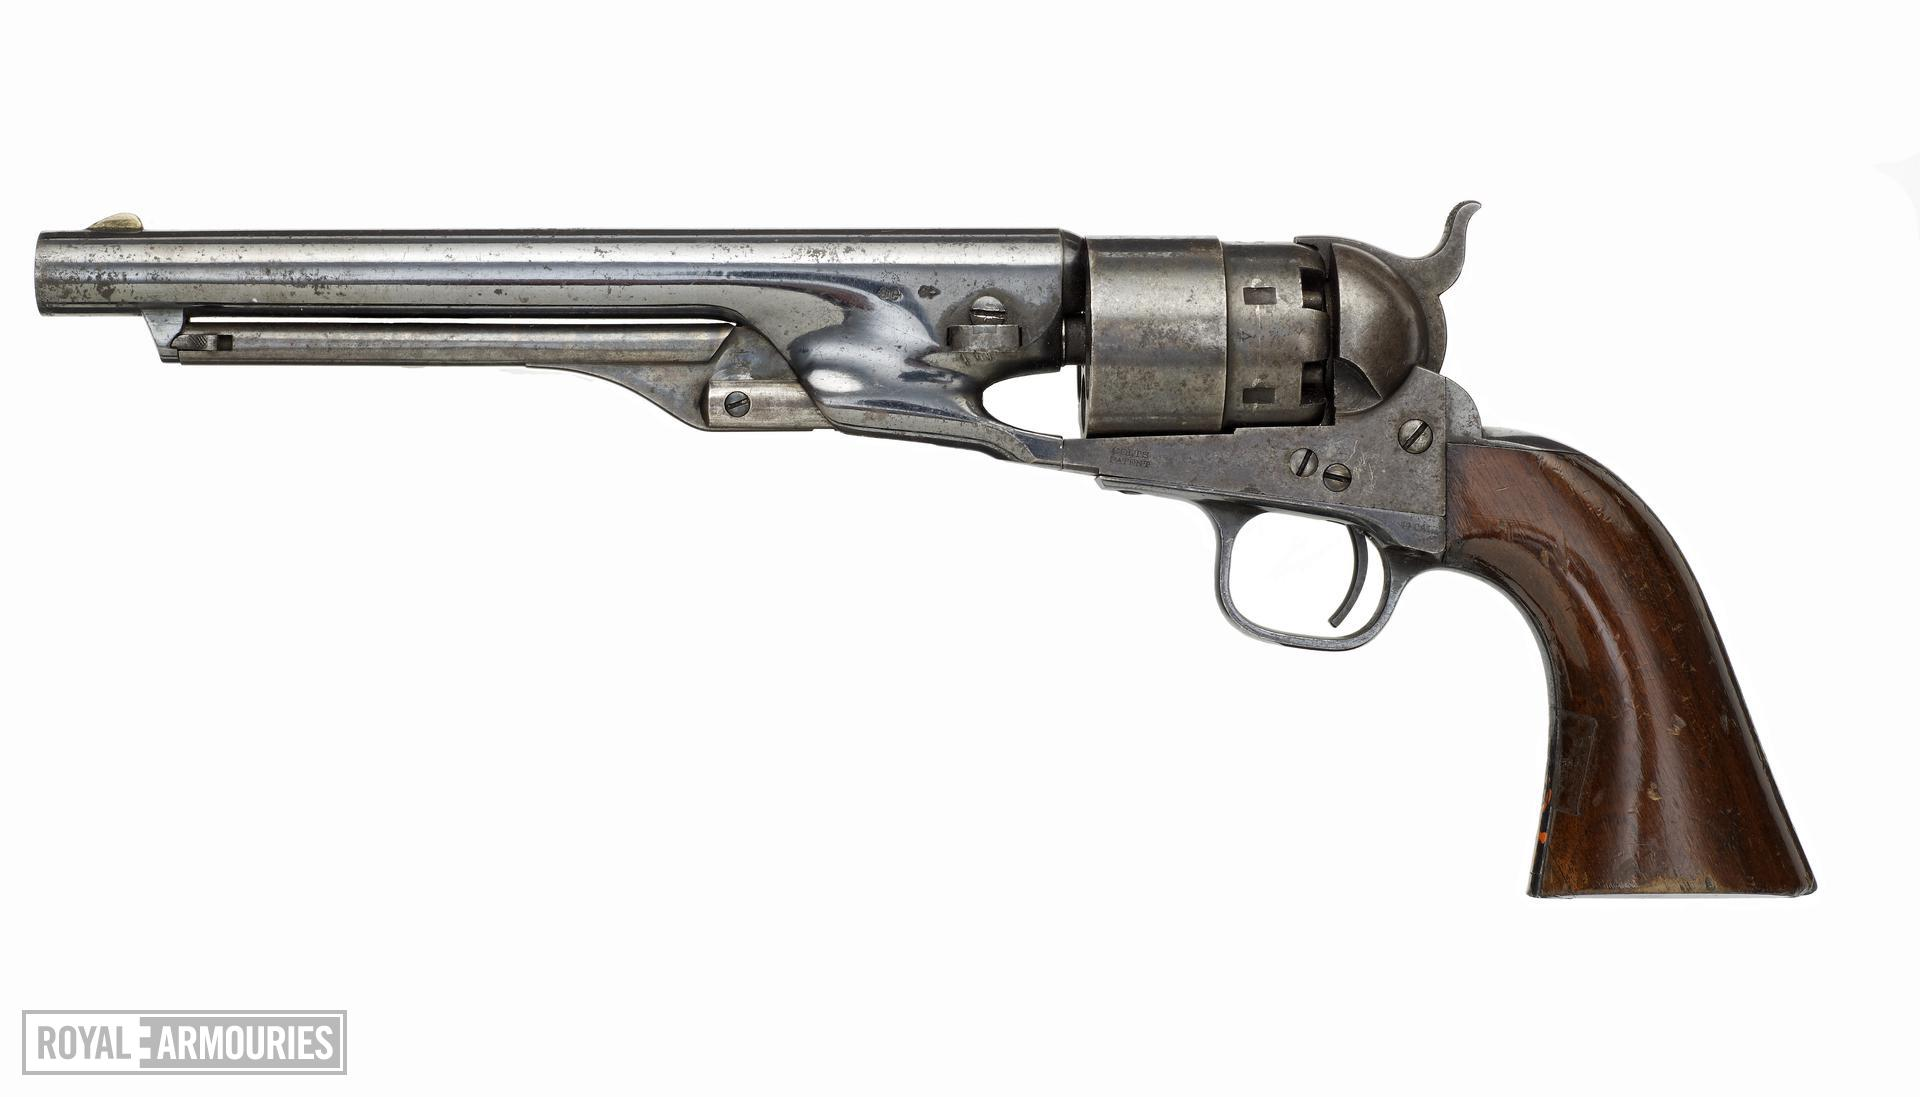 Percussion six-shot revolver - Colt Army Model 1860